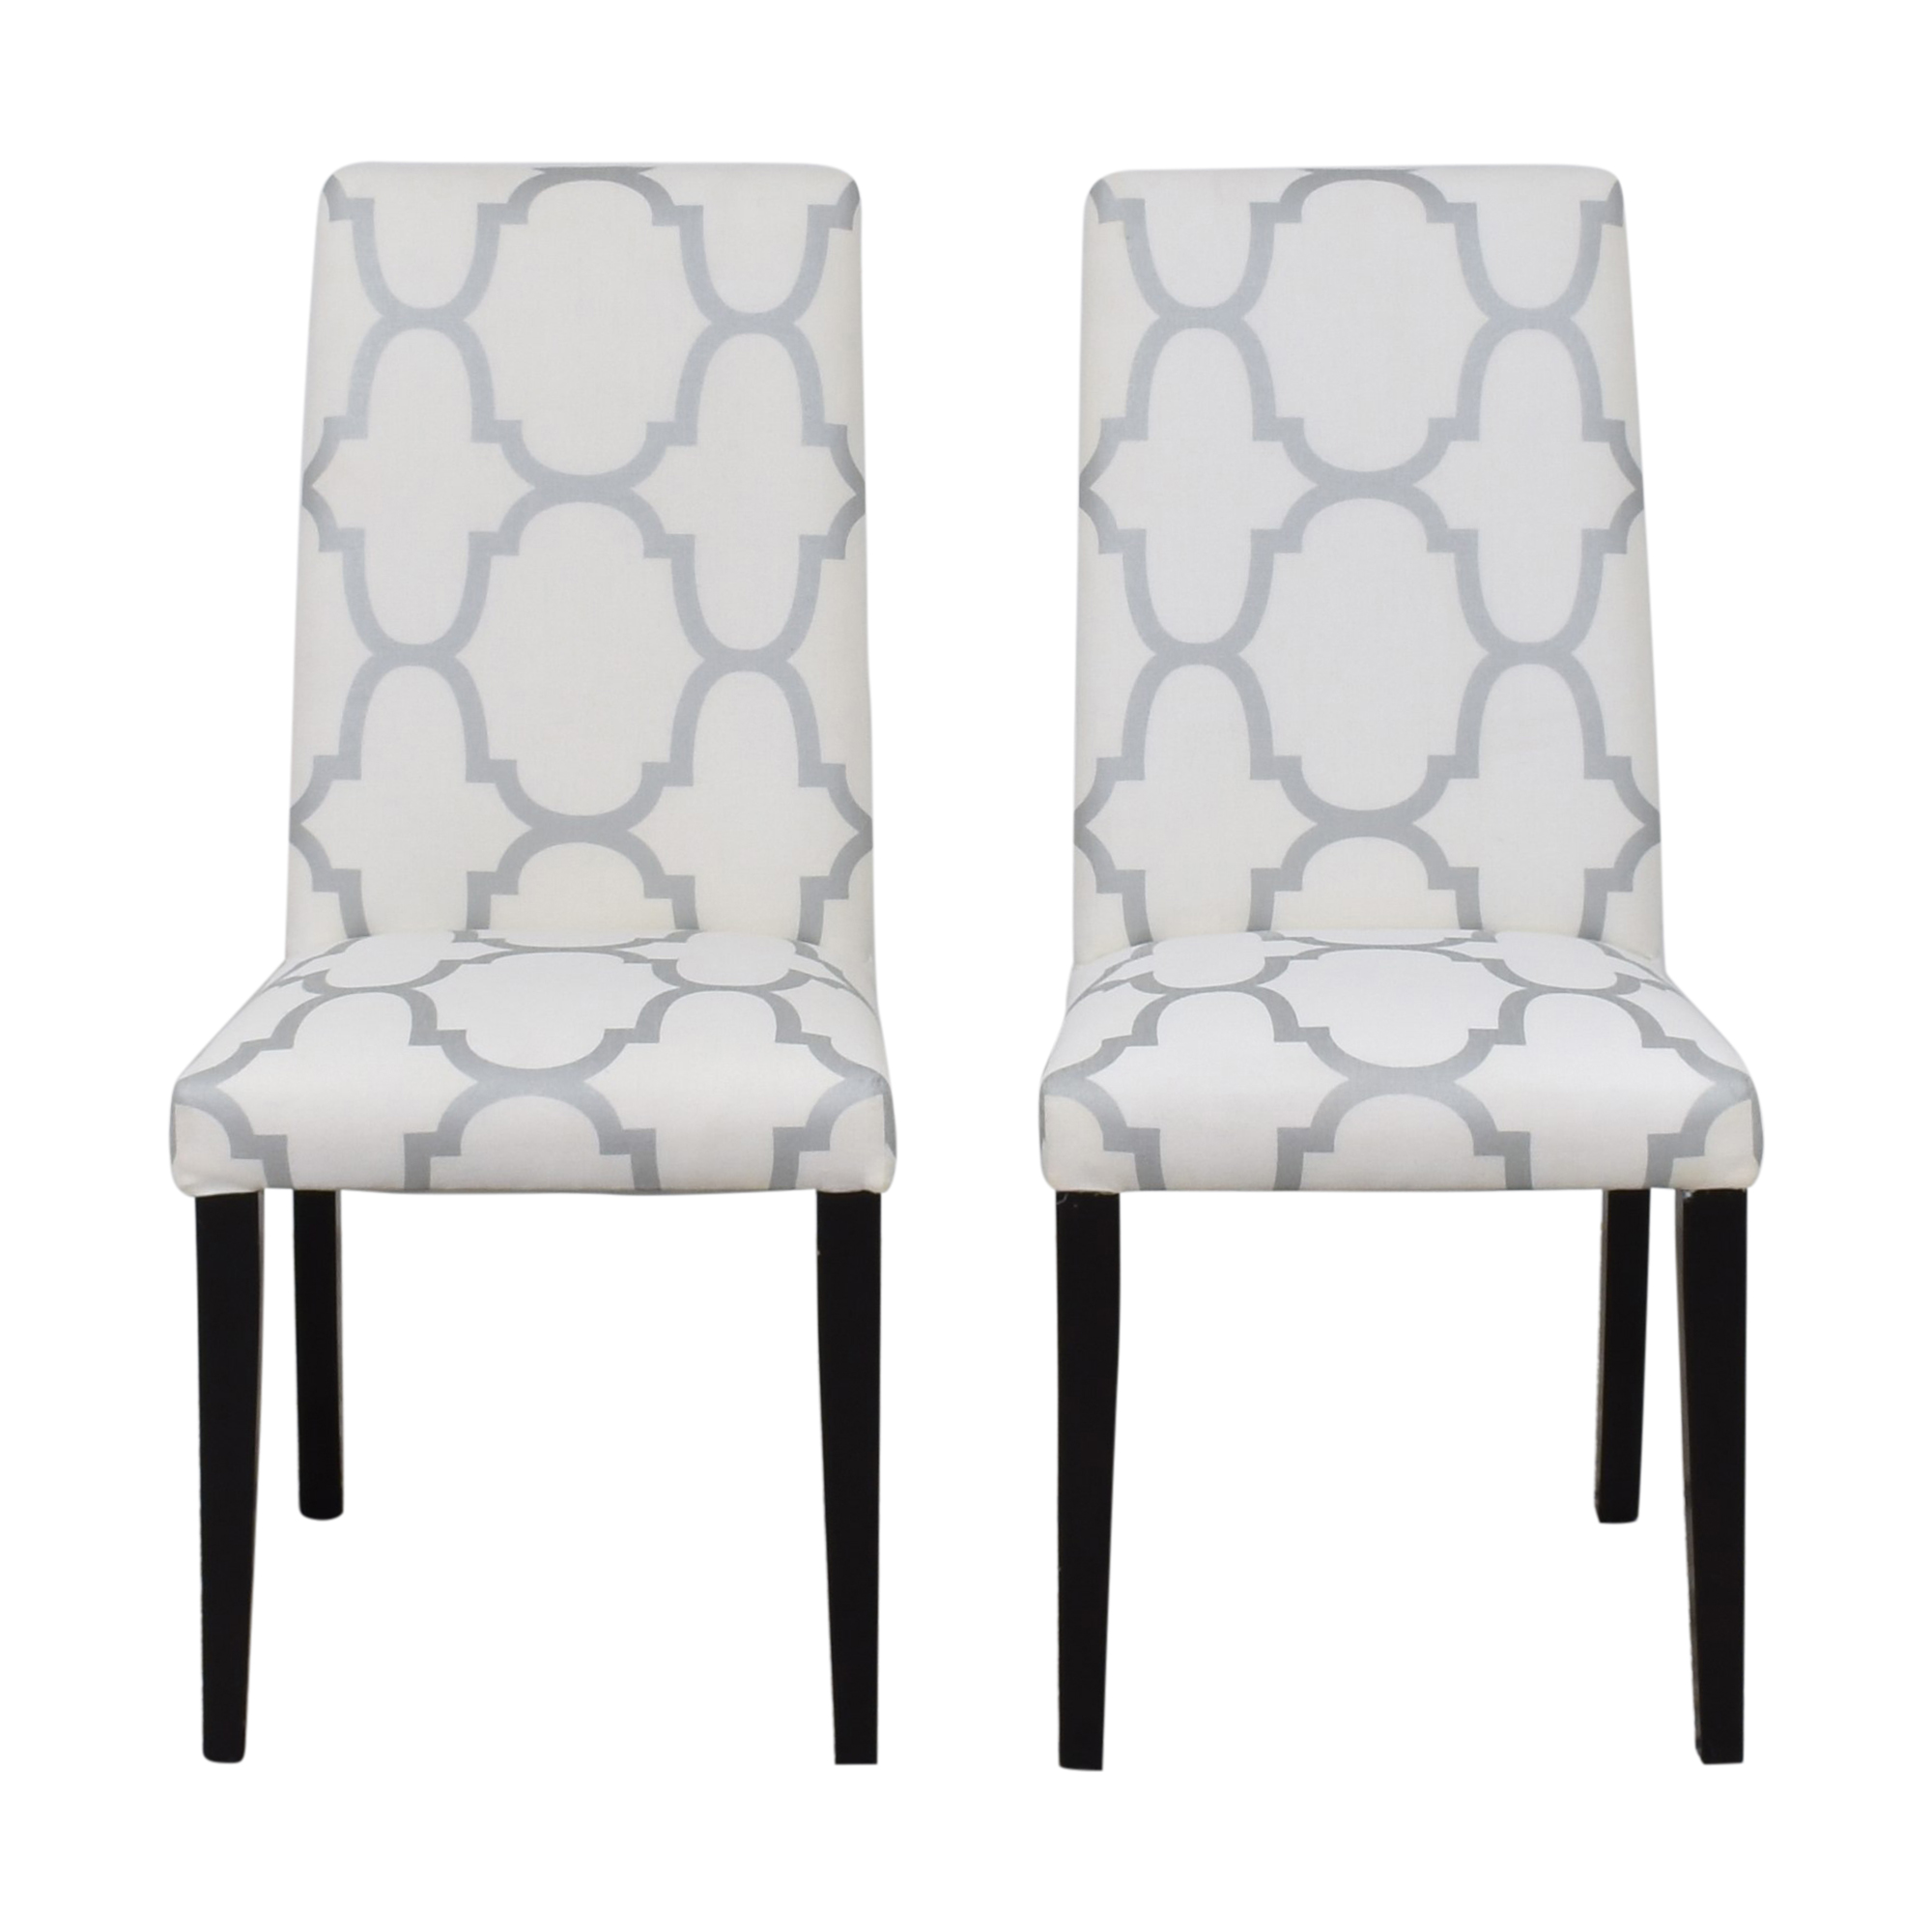 Upholstered Dining Chairs / Chairs